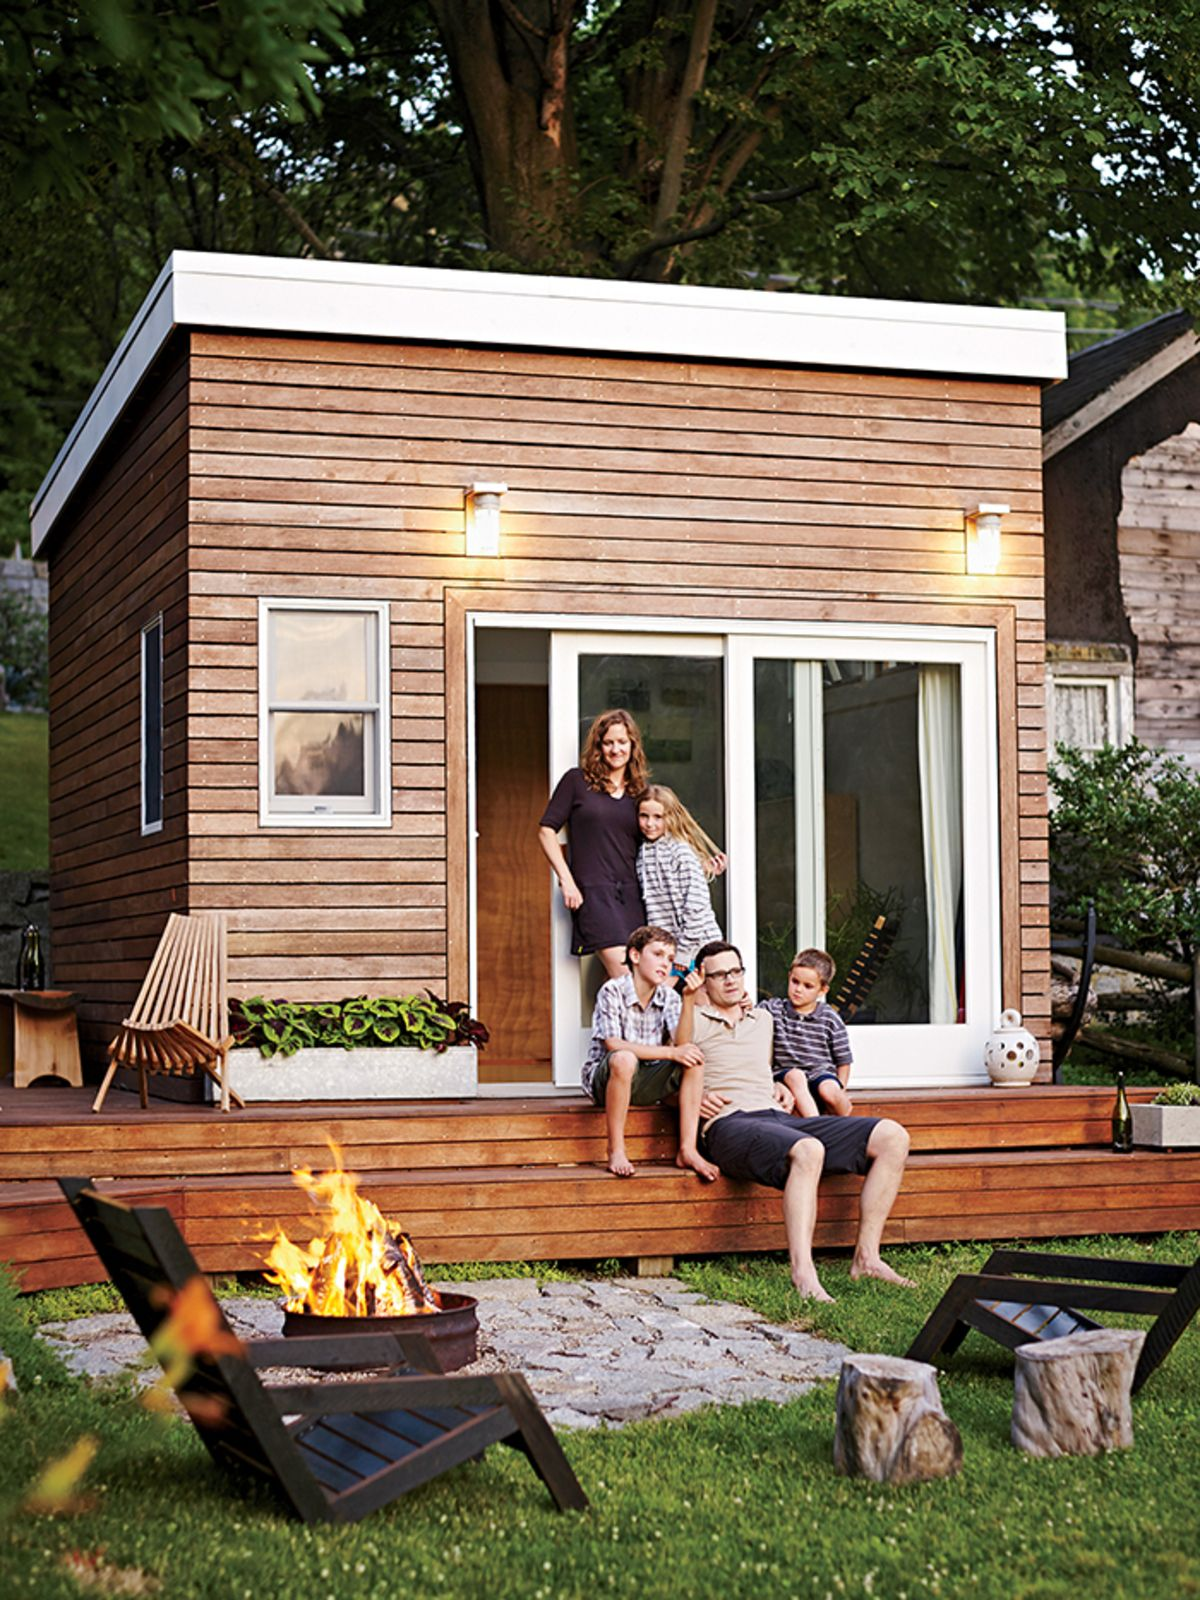 Photo 1 of 8 in A Family Builds a Tiny Backyard Studio on an Even… Tiny  Little HousesSmall ... - Photo 1 Of 8 In A Family Builds A Tiny Backyard Studio On An Even